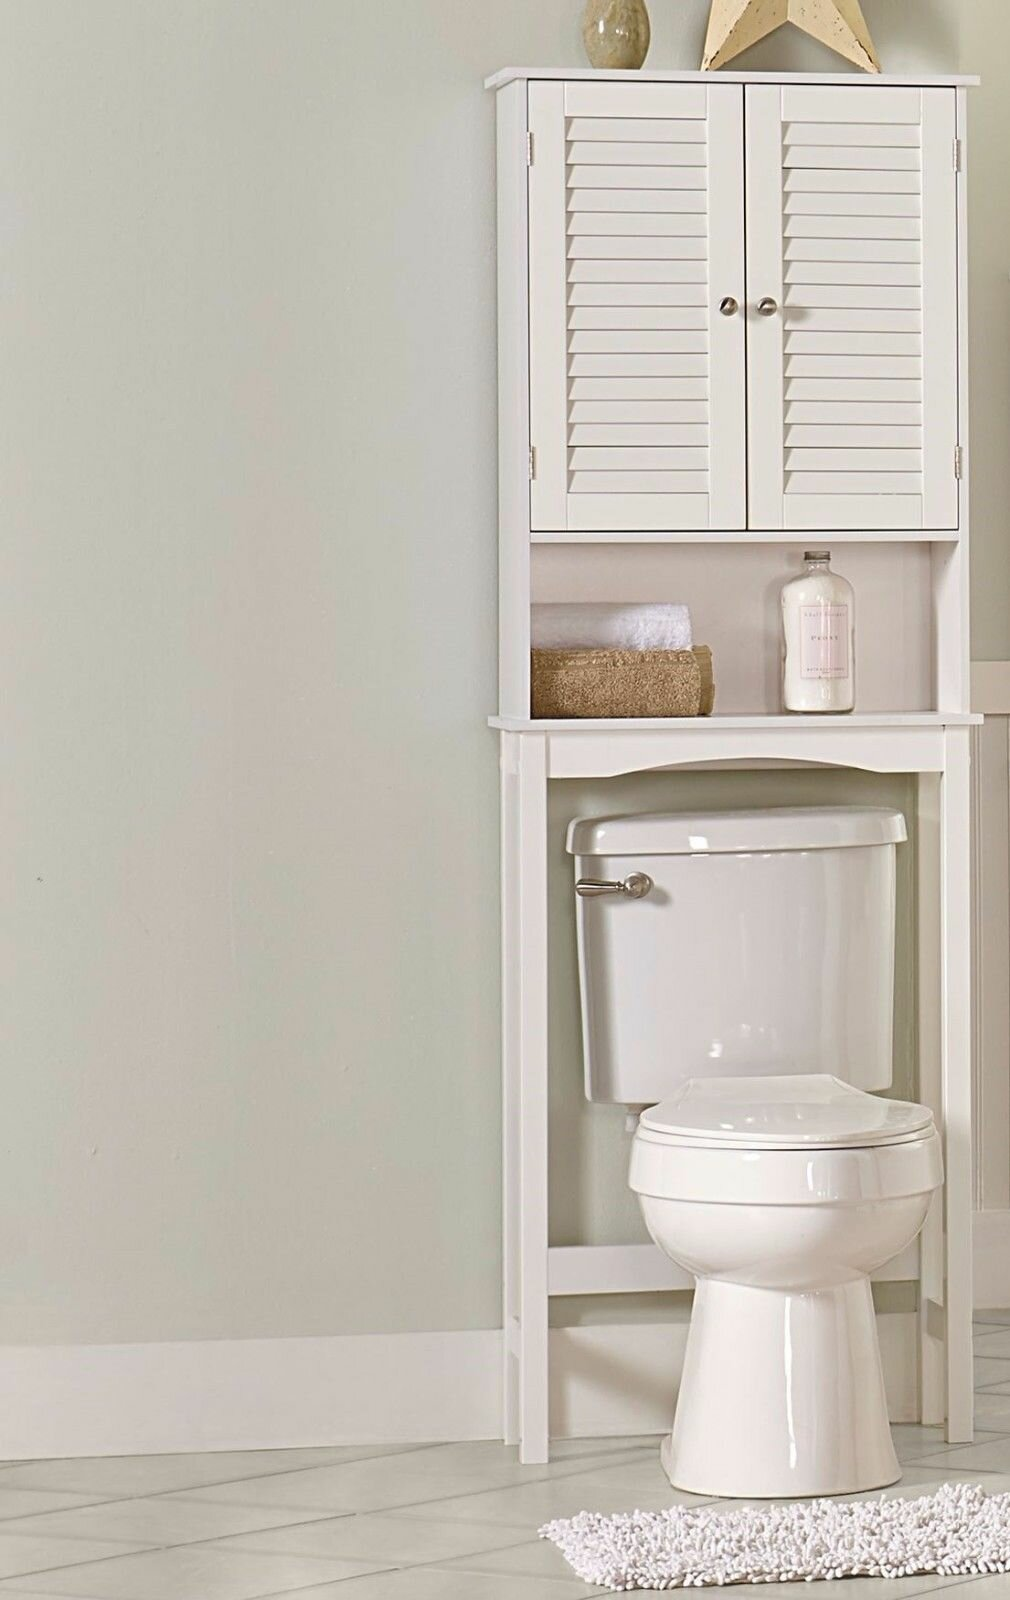 Oak Bathroom Space Saver Over Toilet Great Wood Bathroom Etagere Toilet Topper Cabinet Toilet